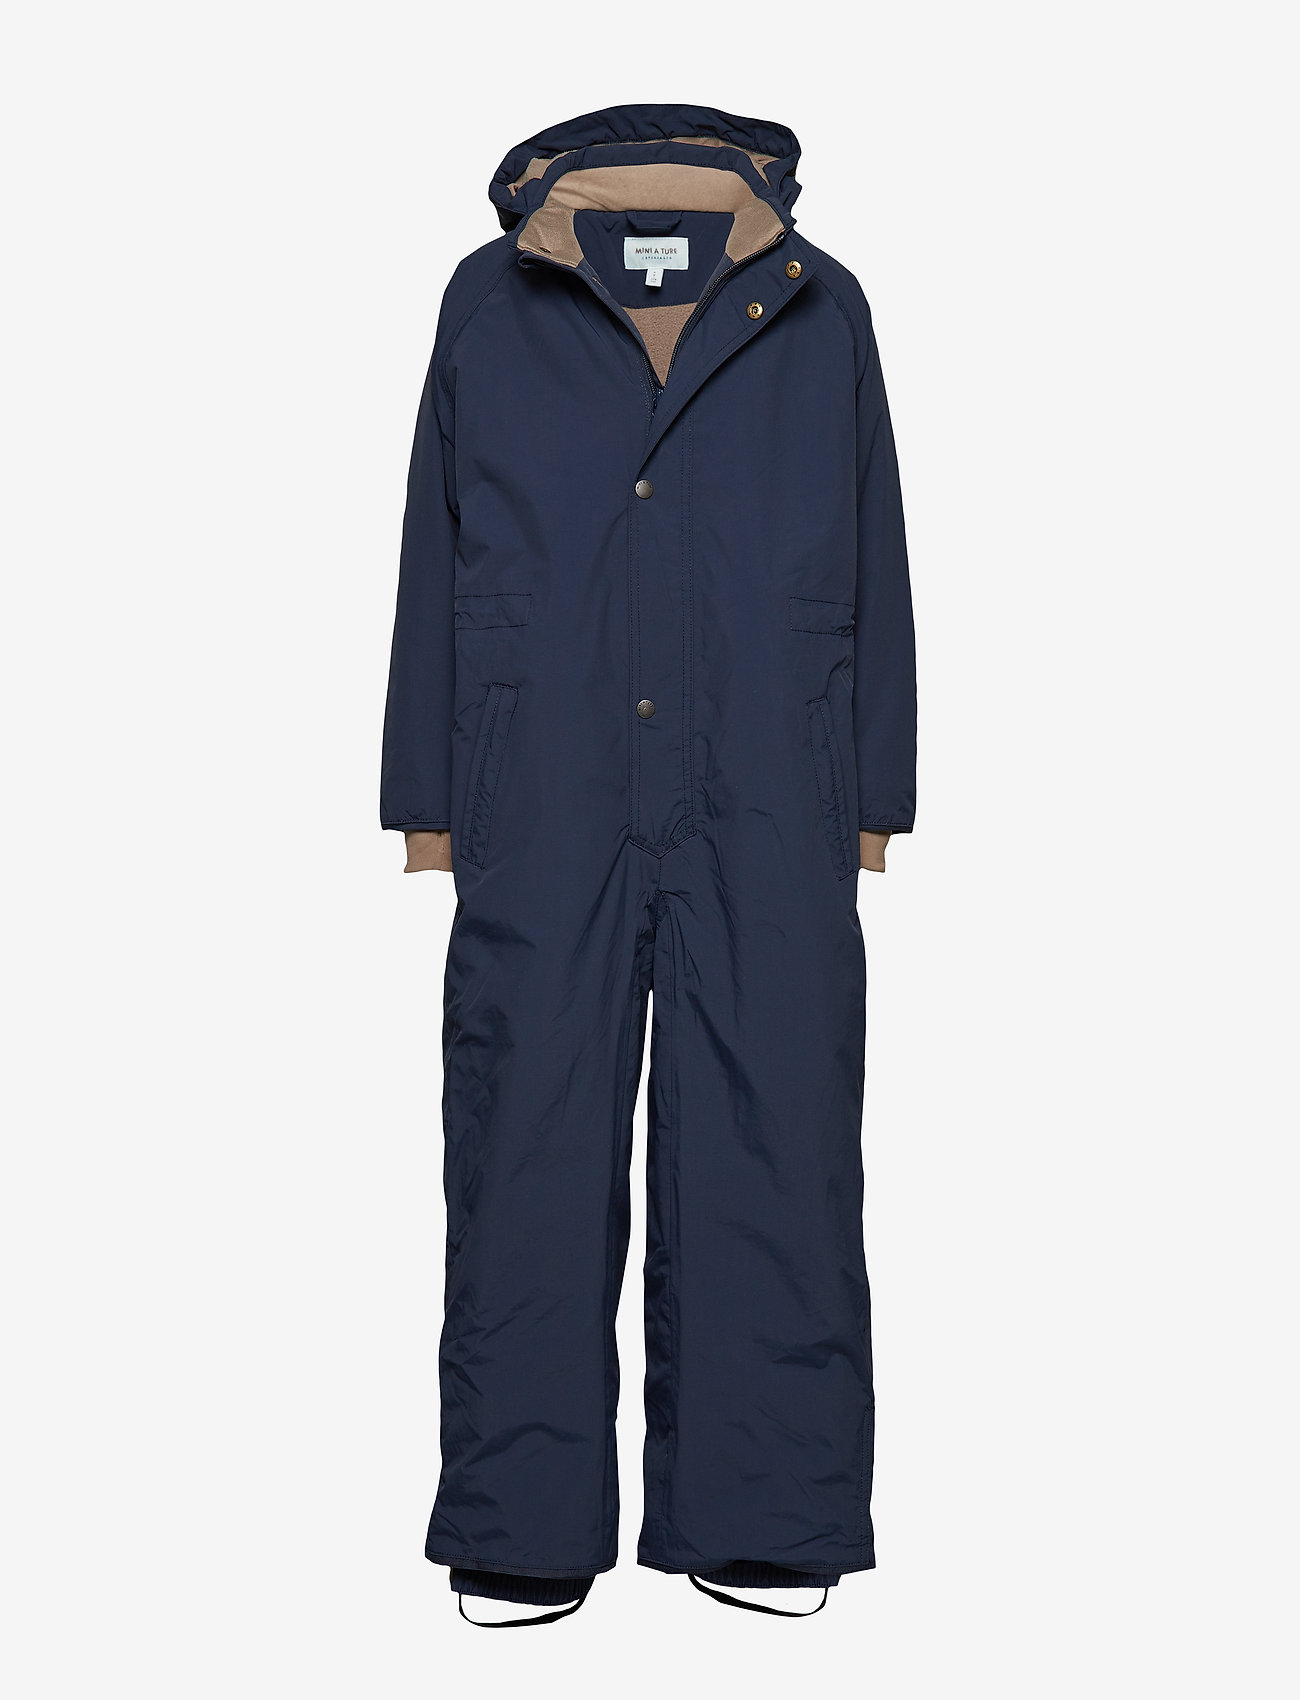 Mini A Ture - Wanni Snowsuit, K - snowsuit - peacoat blue - 0